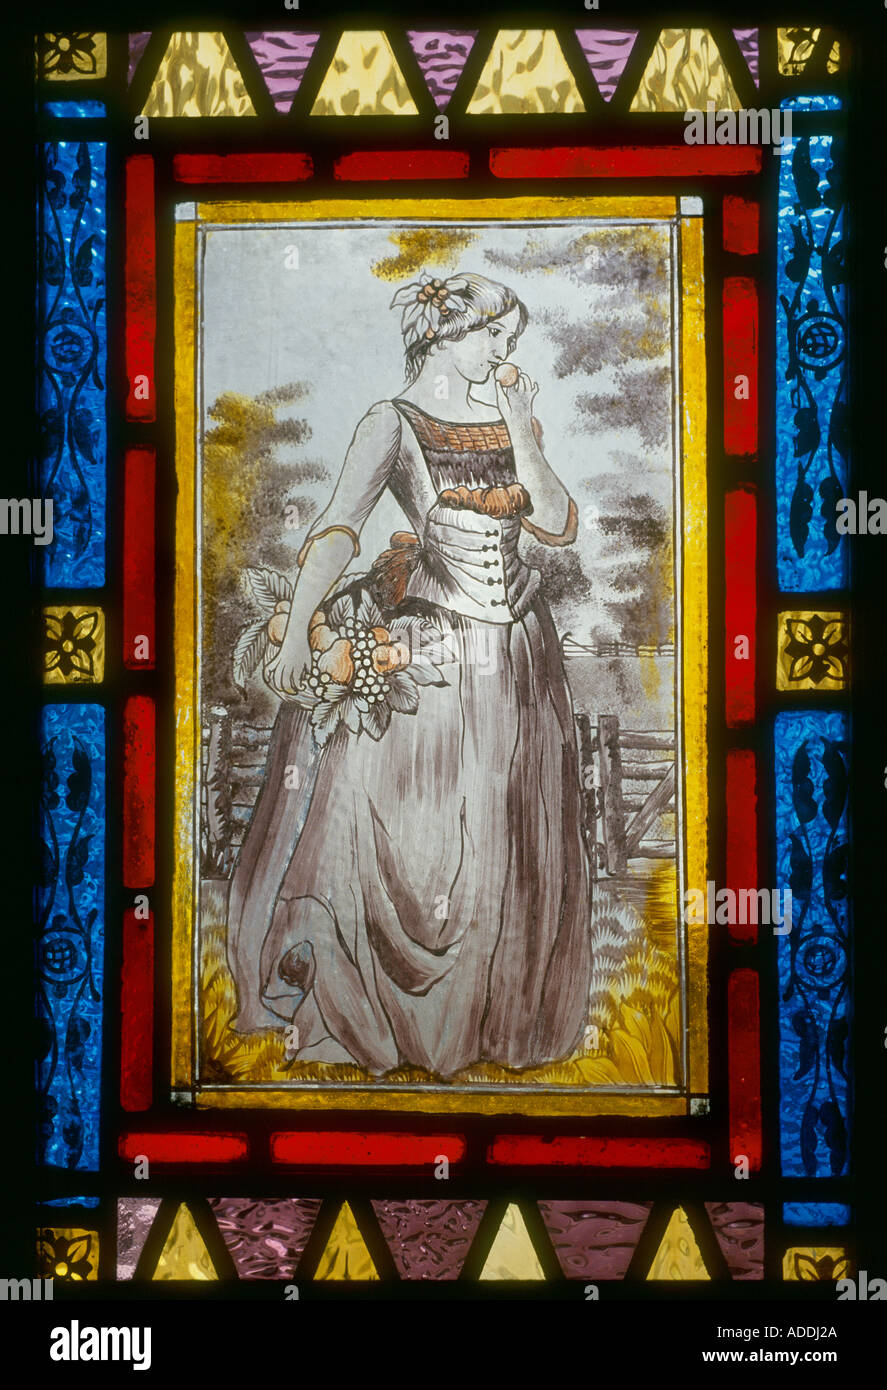 Decorative stained glass hand painted victorian woman on front decorative stained glass hand painted victorian woman on front door panel british housing london stock eventelaan Images